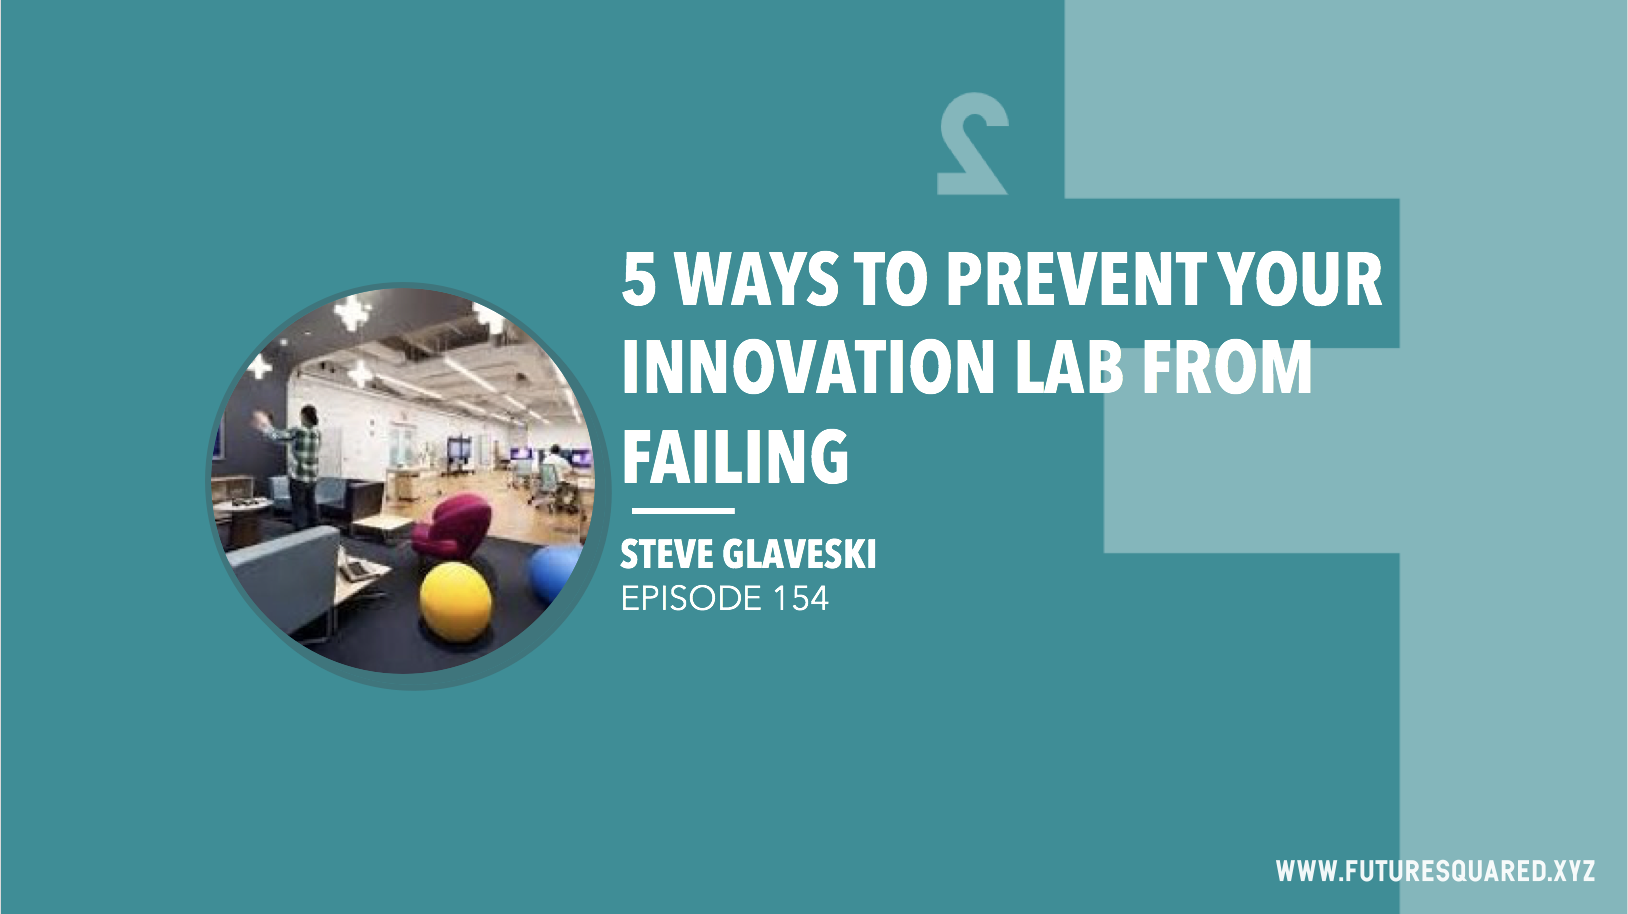 Future Squared Episode #154: 5 Ways to Prevent Your Innovation Lab from Failing